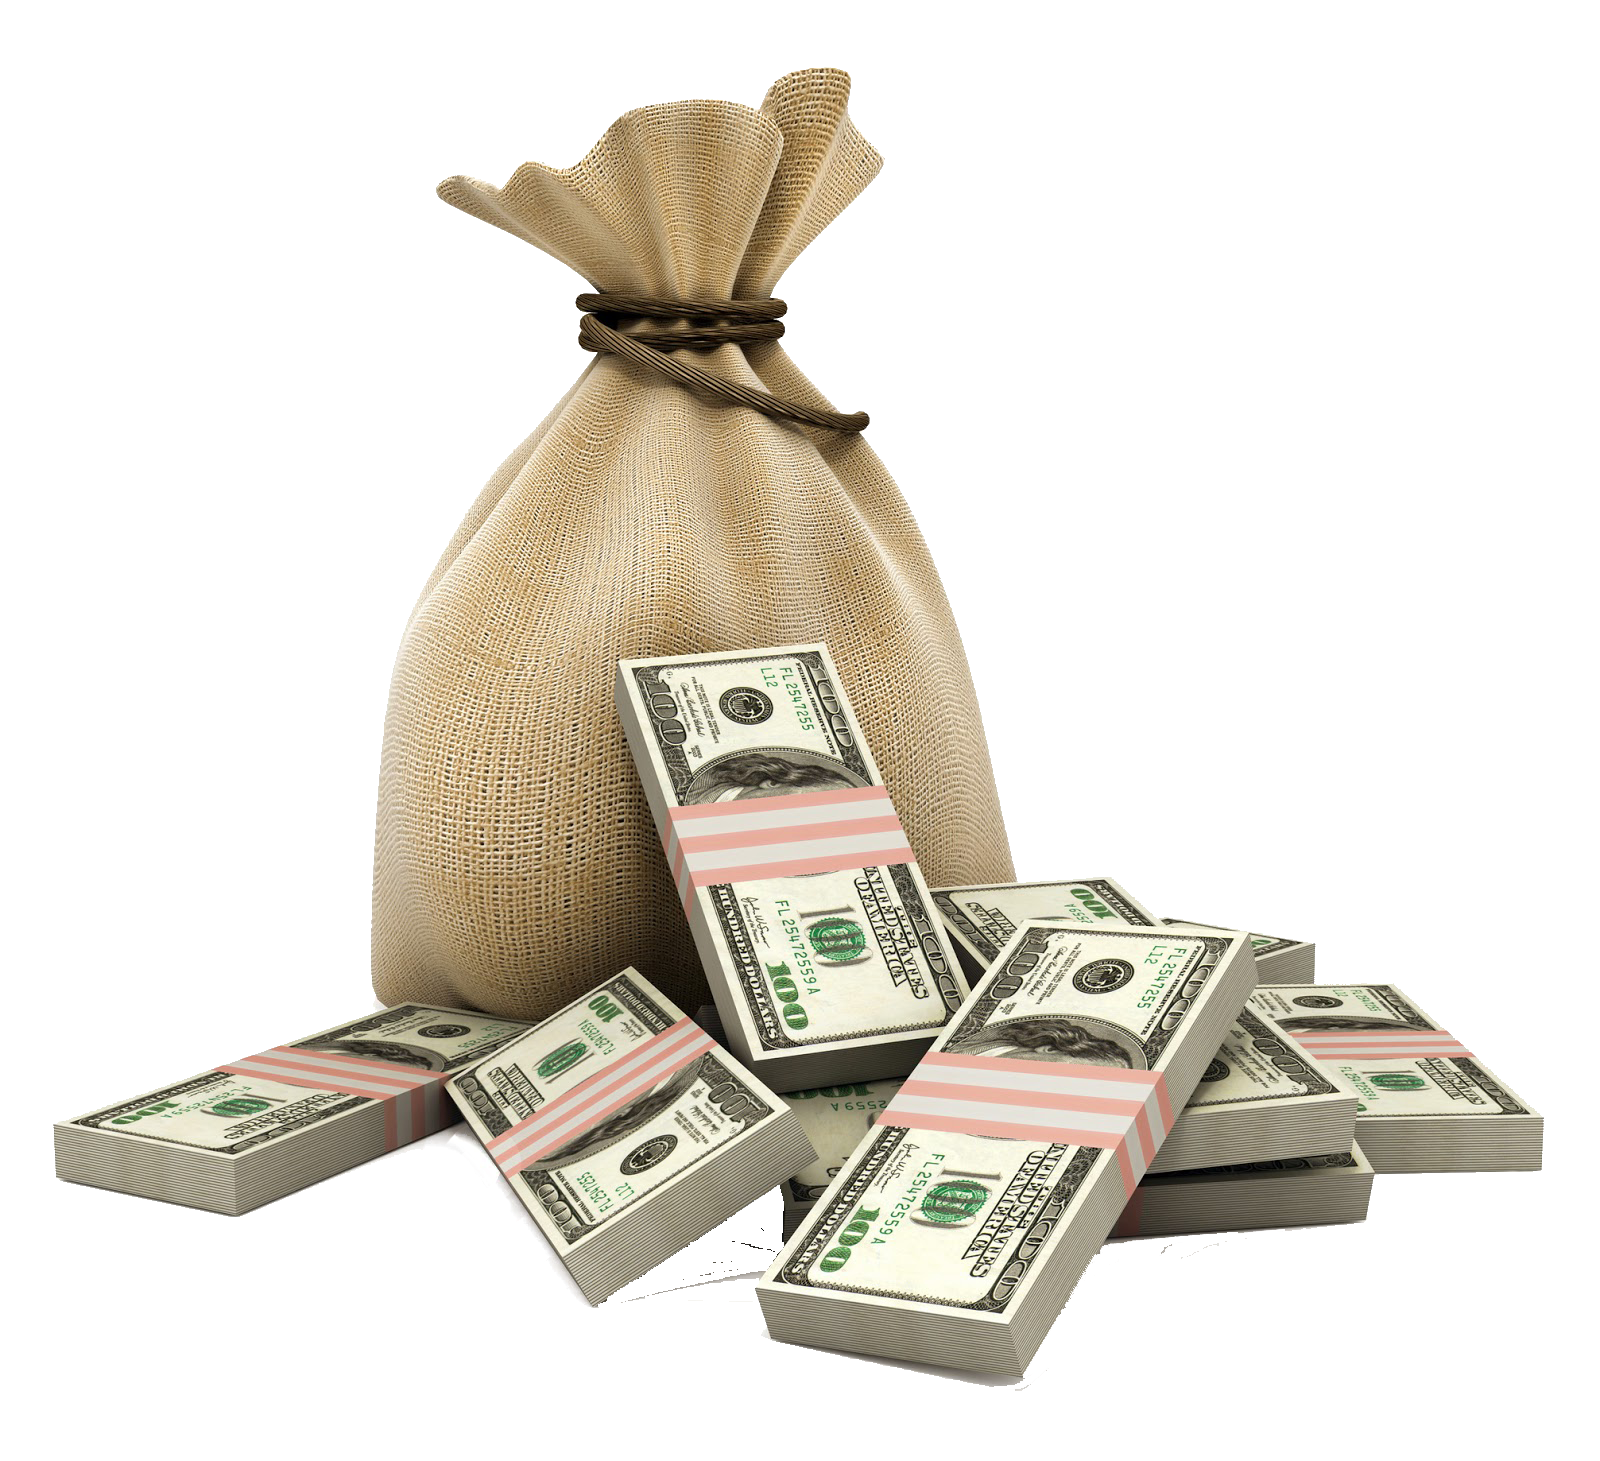 Bag Money Loan Dollar Cash Currency Purse PNG Image